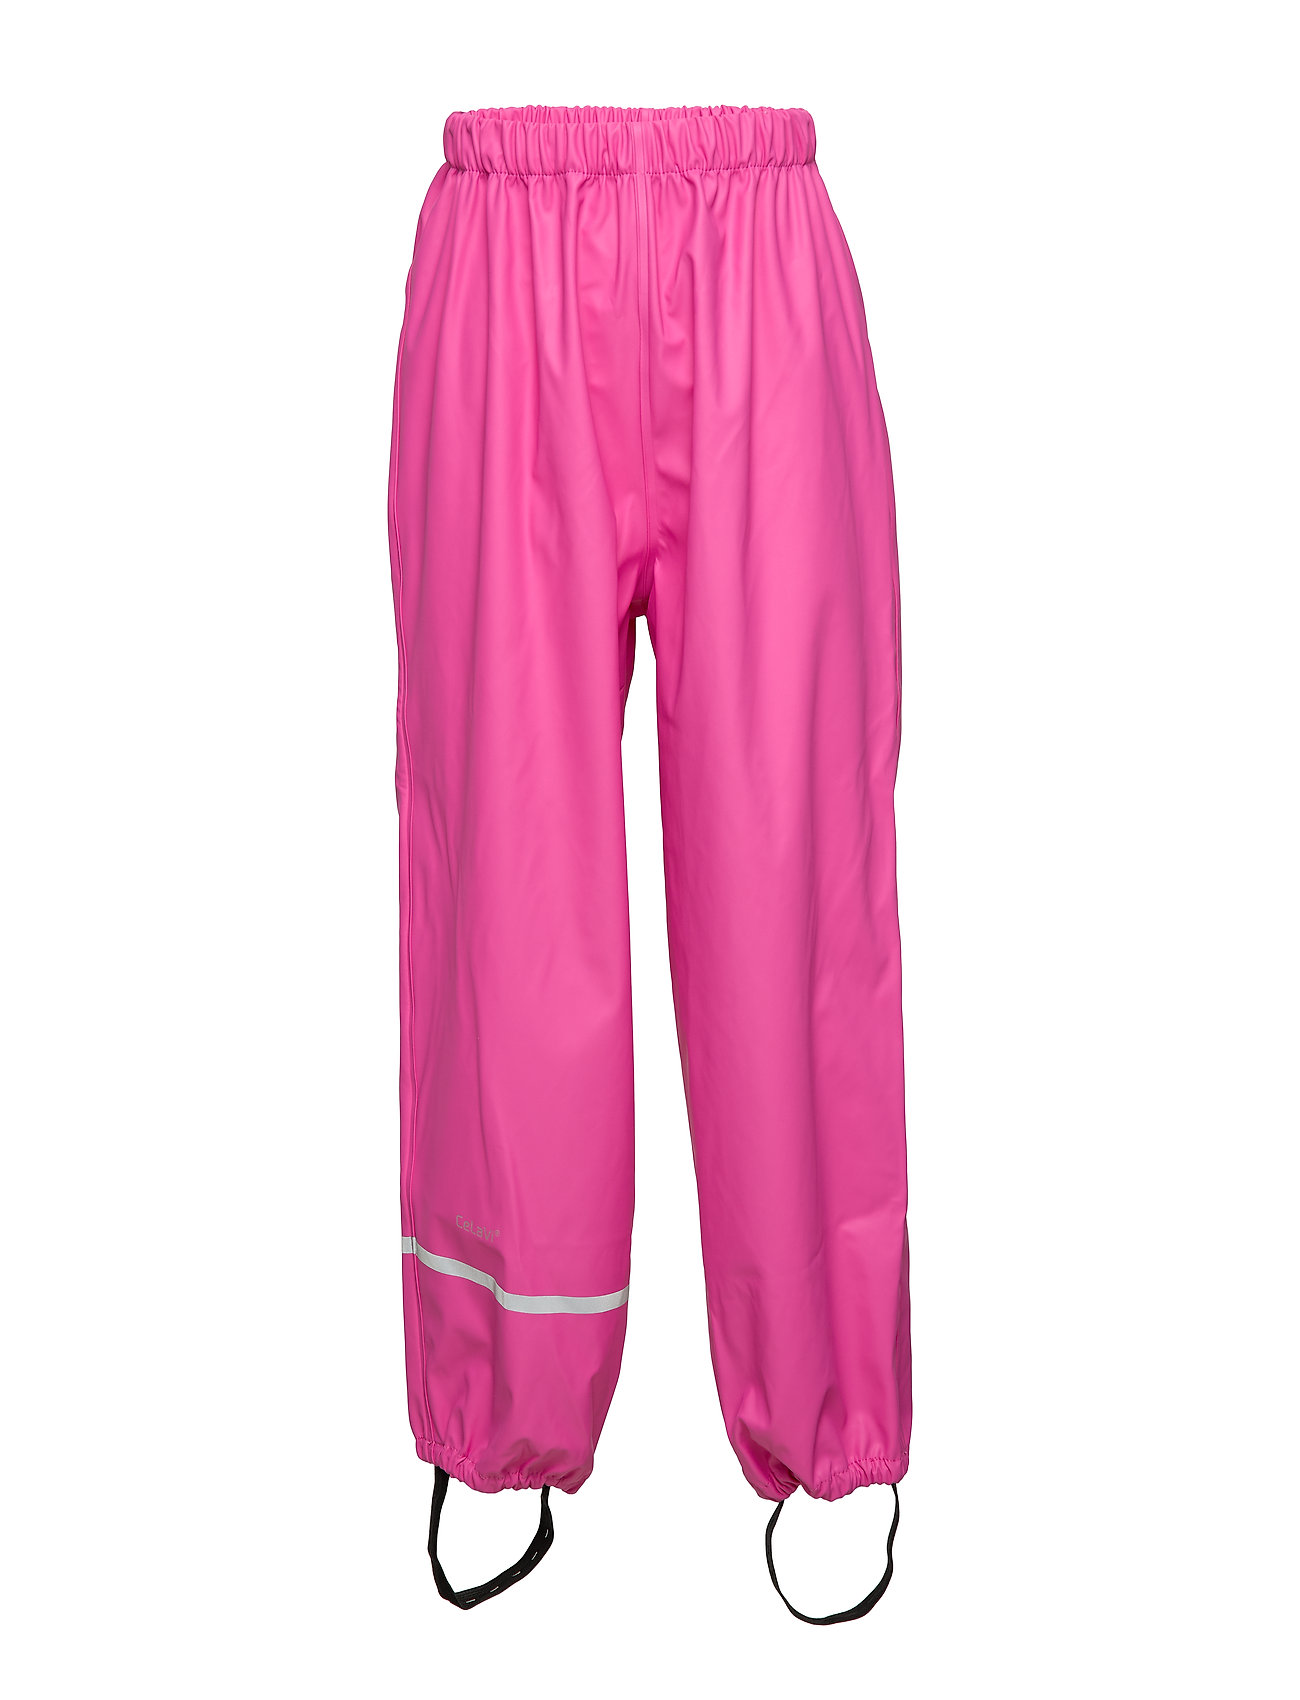 CeLaVi Rainwear pants, solid - REAL PINK